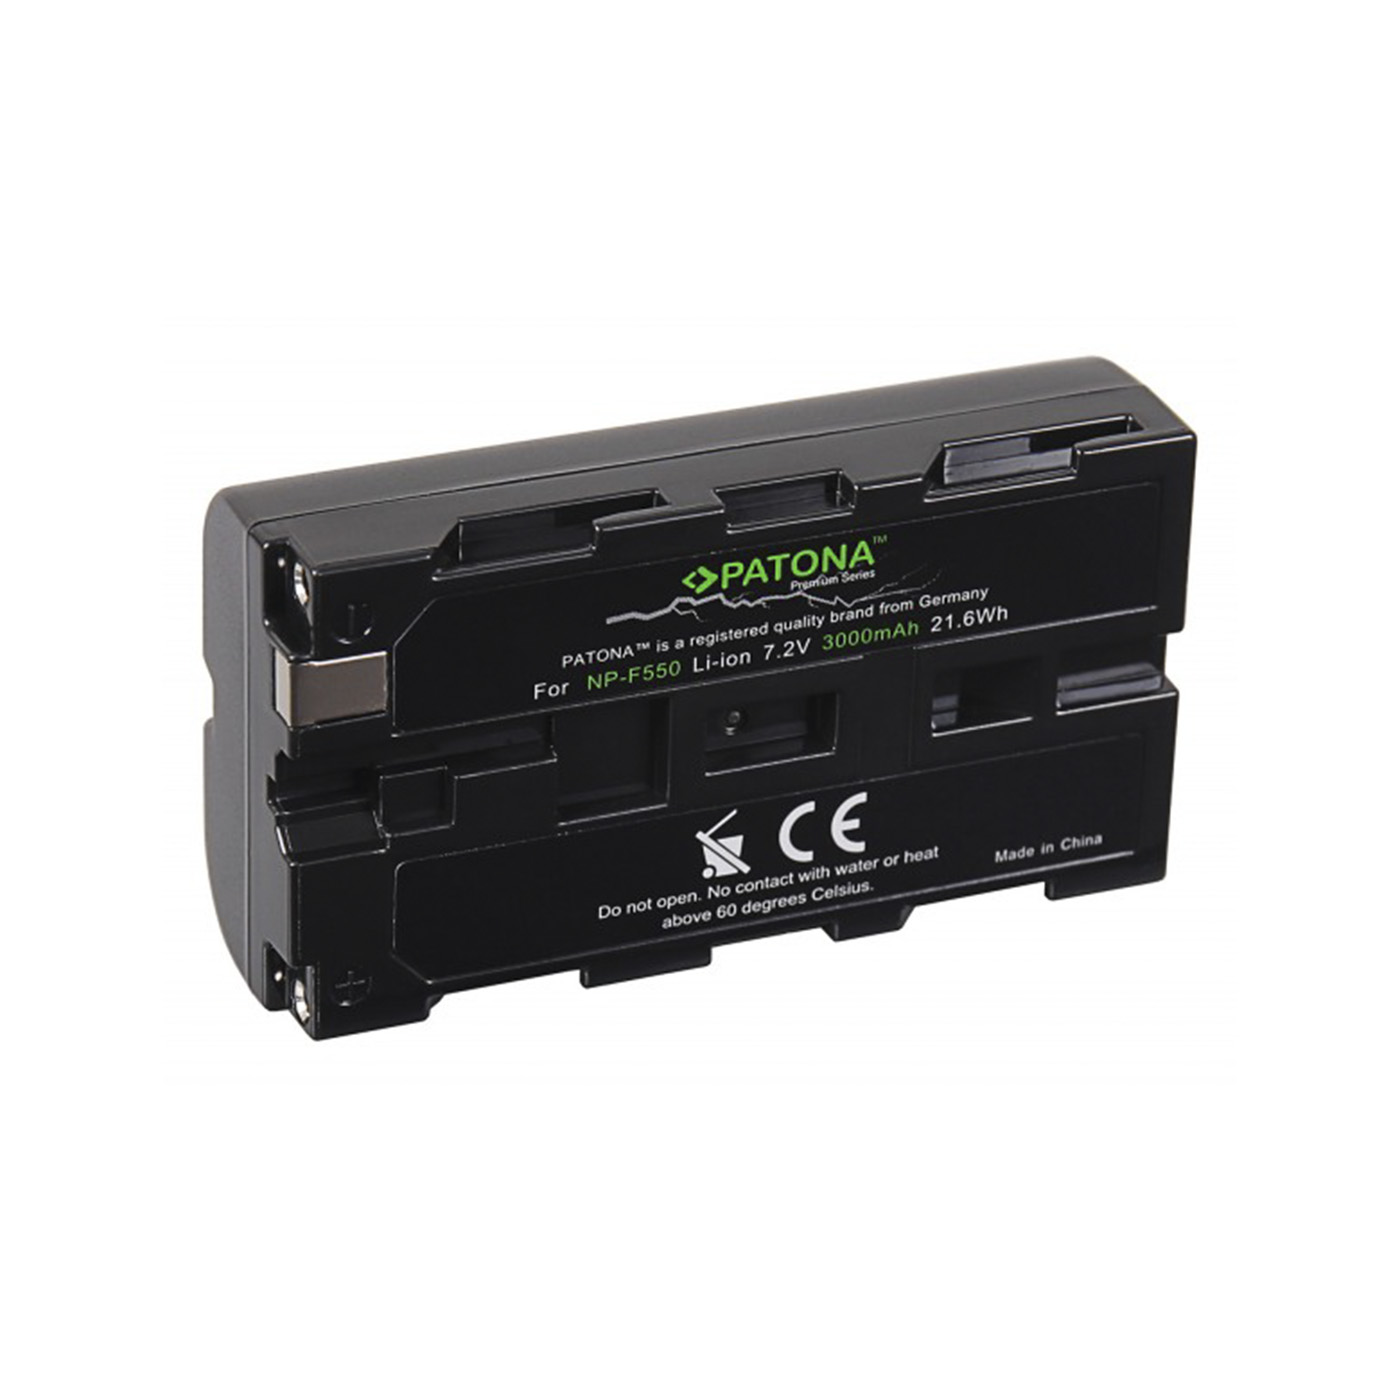 Sony NP F550_Battery_PVE_2_n 150x150